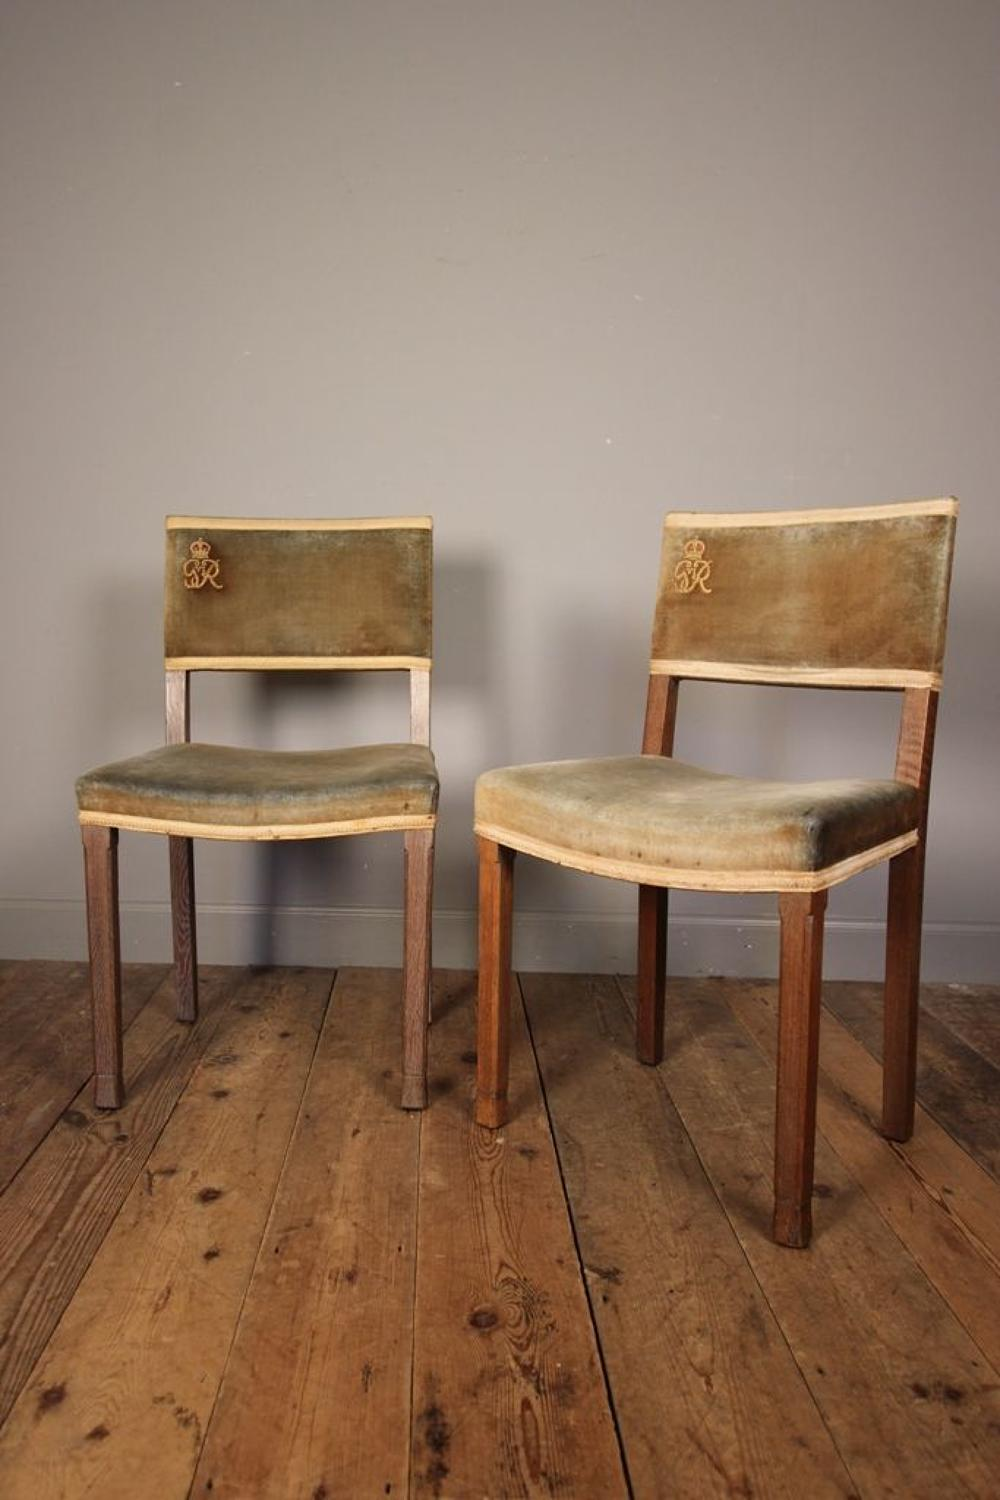 A Fabulous Pair of George VI Coronation Chairs